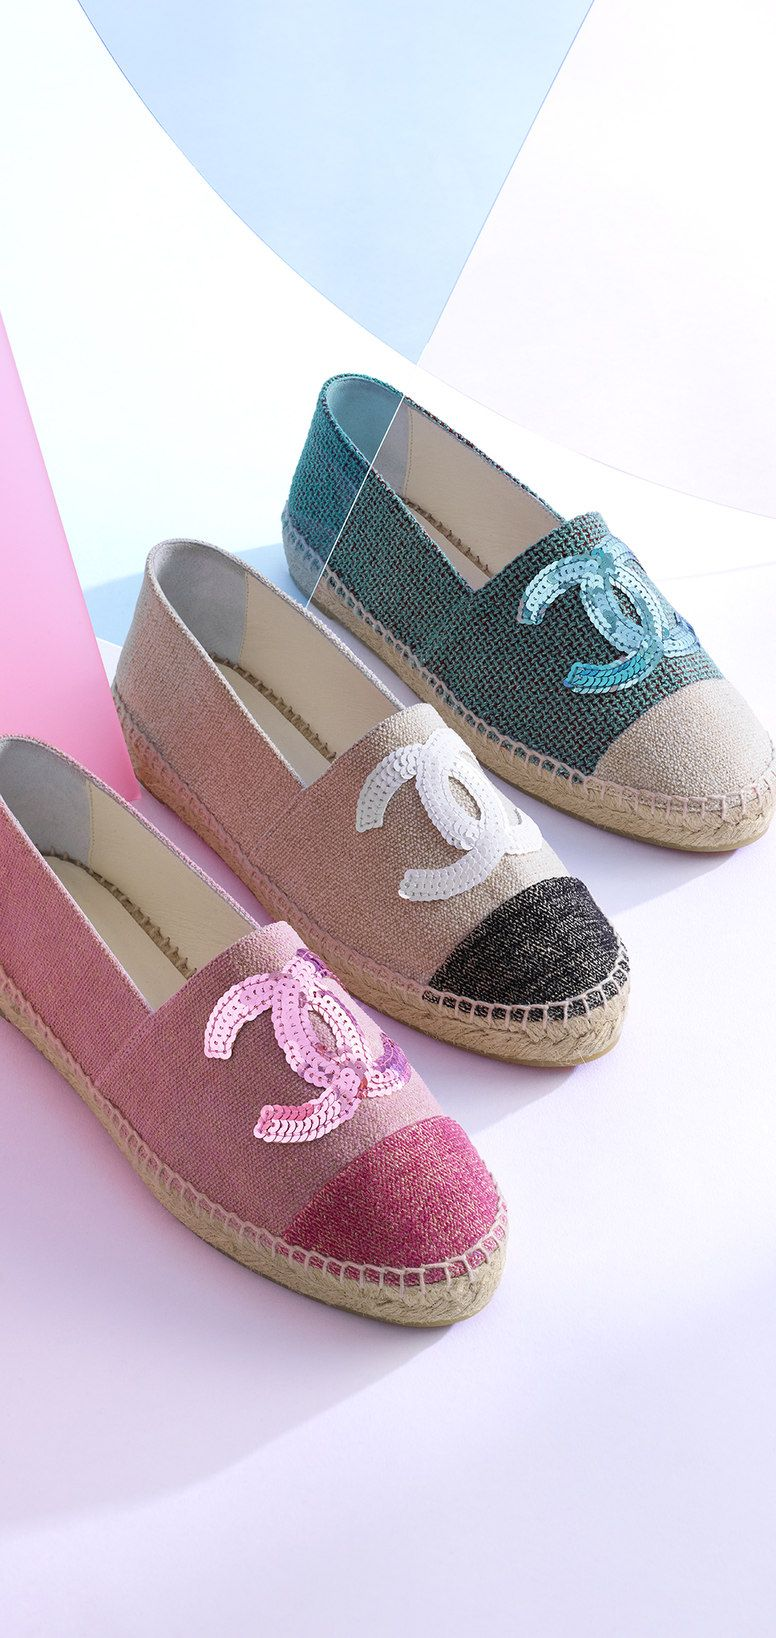 e8c98c911853 chanel espadrilles - I Love these! Watch the Chanel sizing when you buy  these - I wear a Size 9 shoe